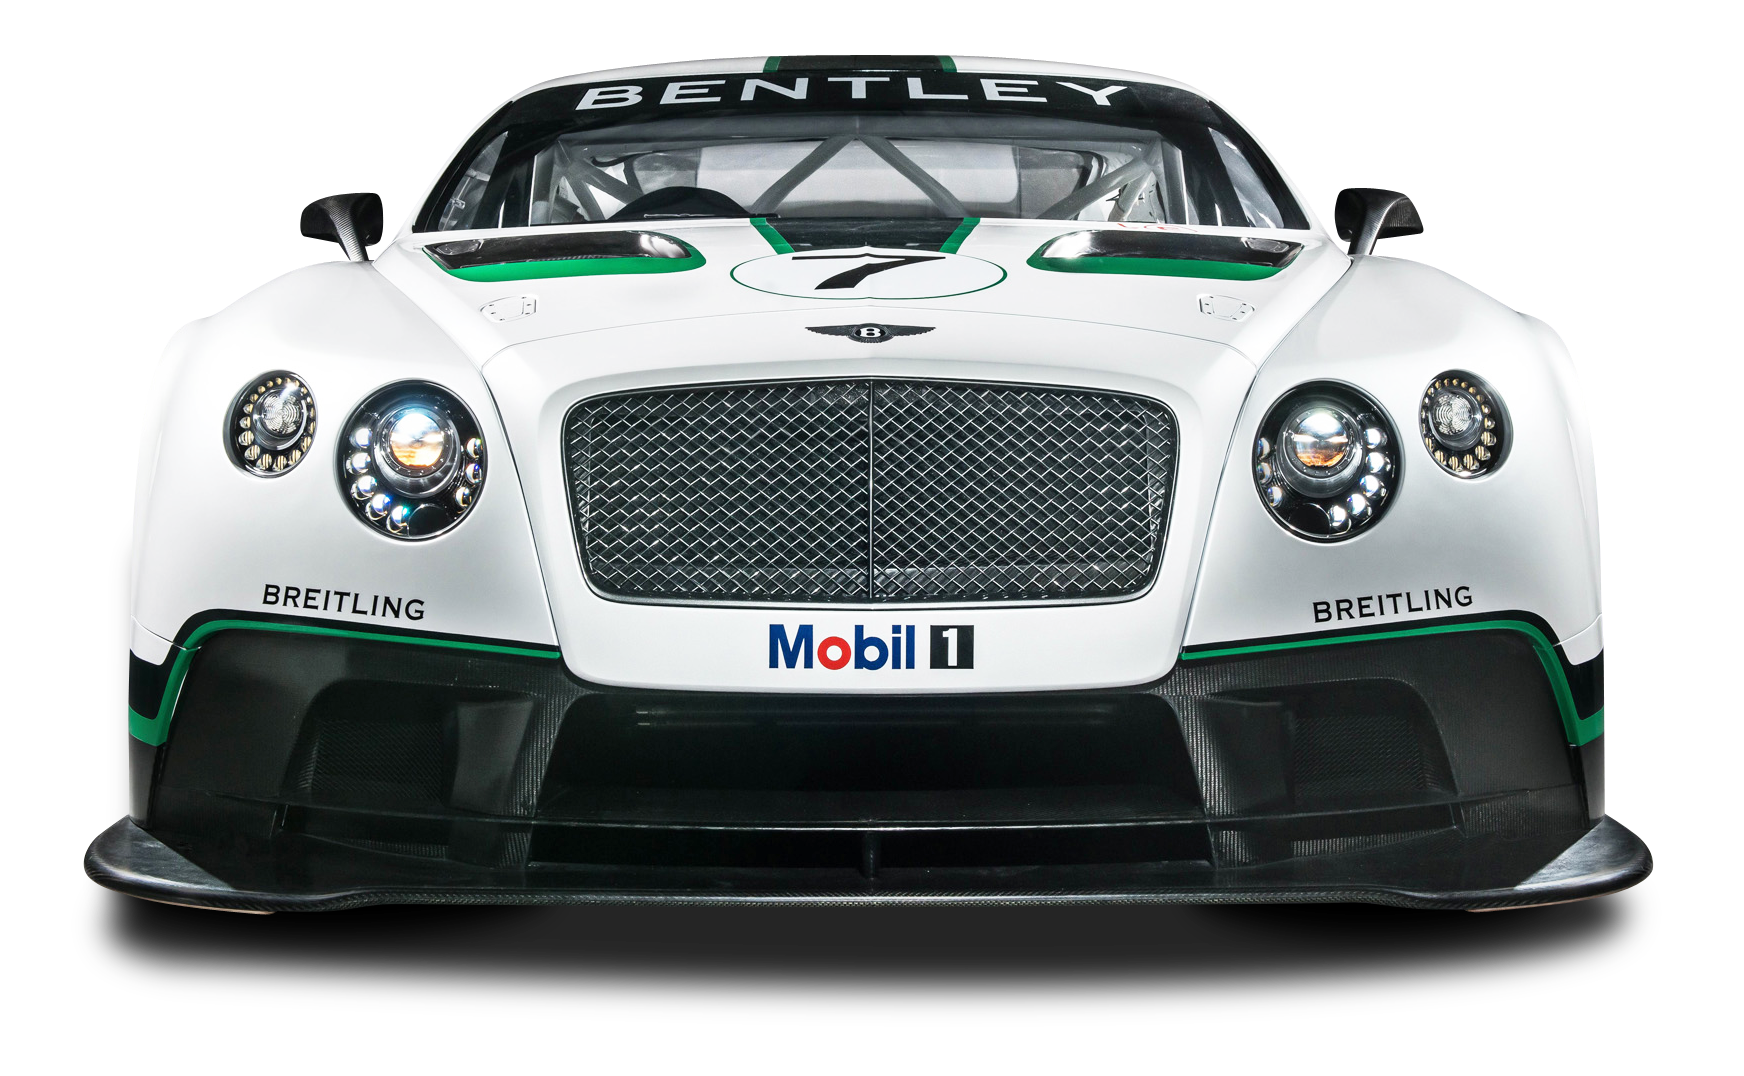 Car clipart front view graphic royalty free Bentley Continental GT3 R Car Front View PNG Image - PurePNG | Free ... graphic royalty free